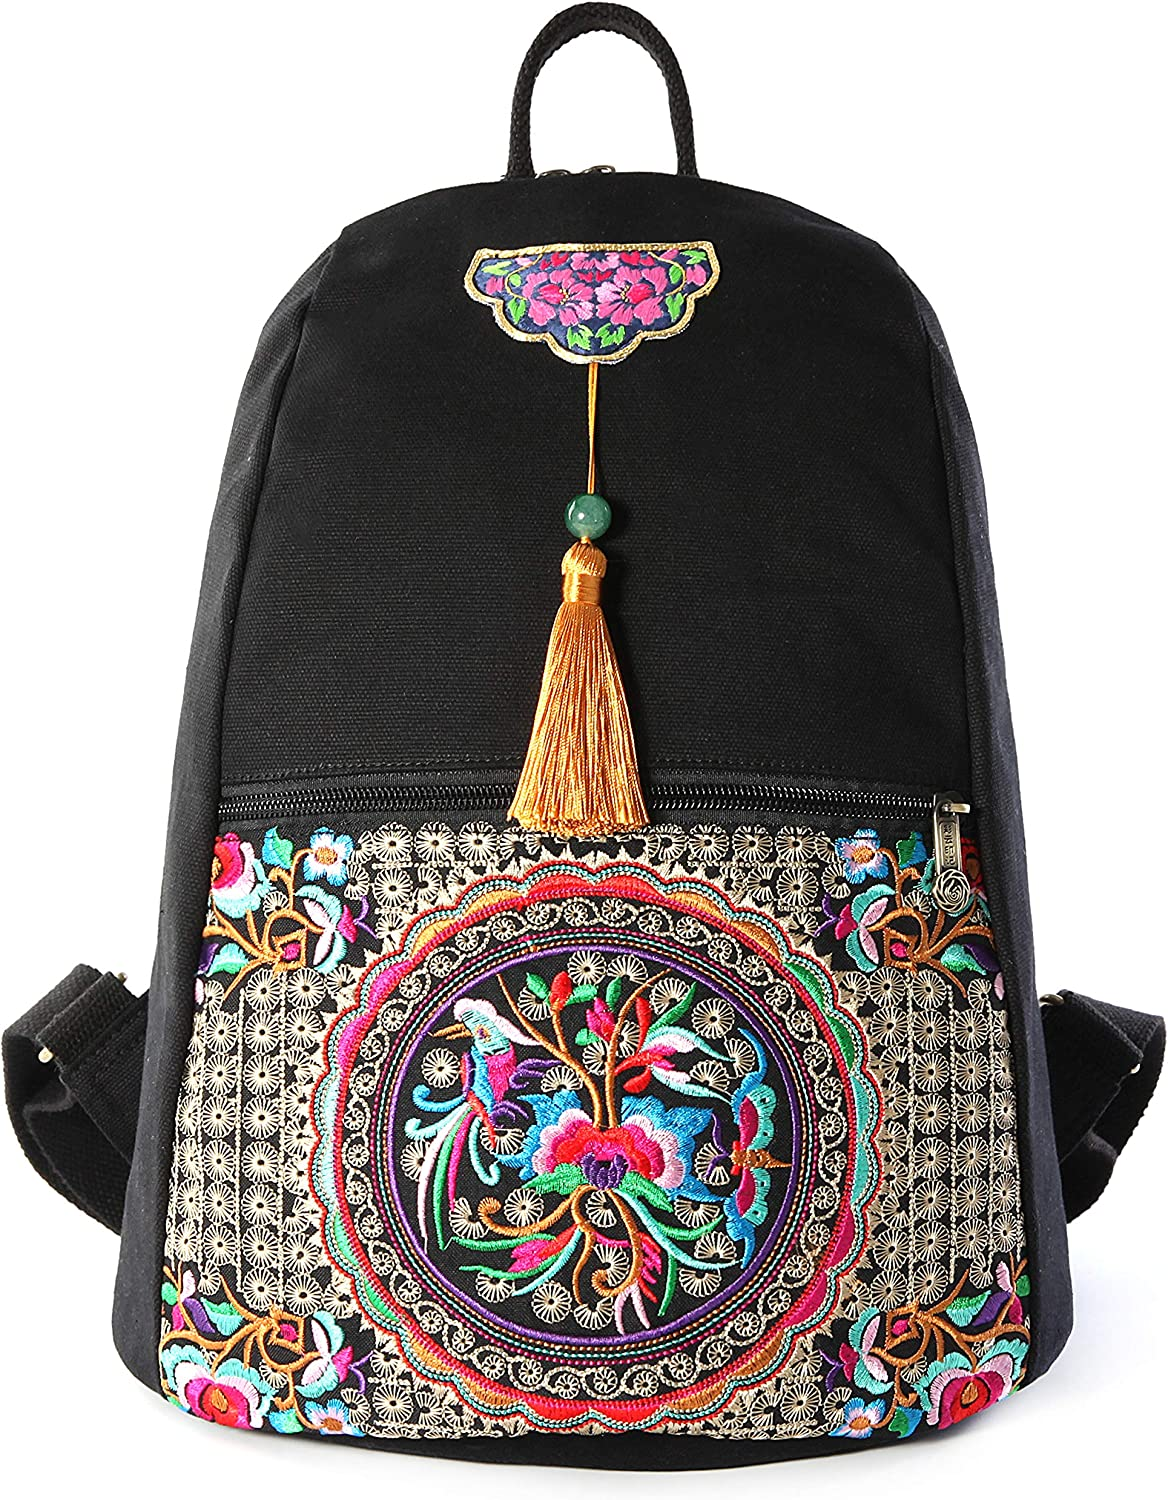 Embroidery Canvas Backpack Purse for Women, Small Tassel Casual Travel Shoulder Bag Daypack